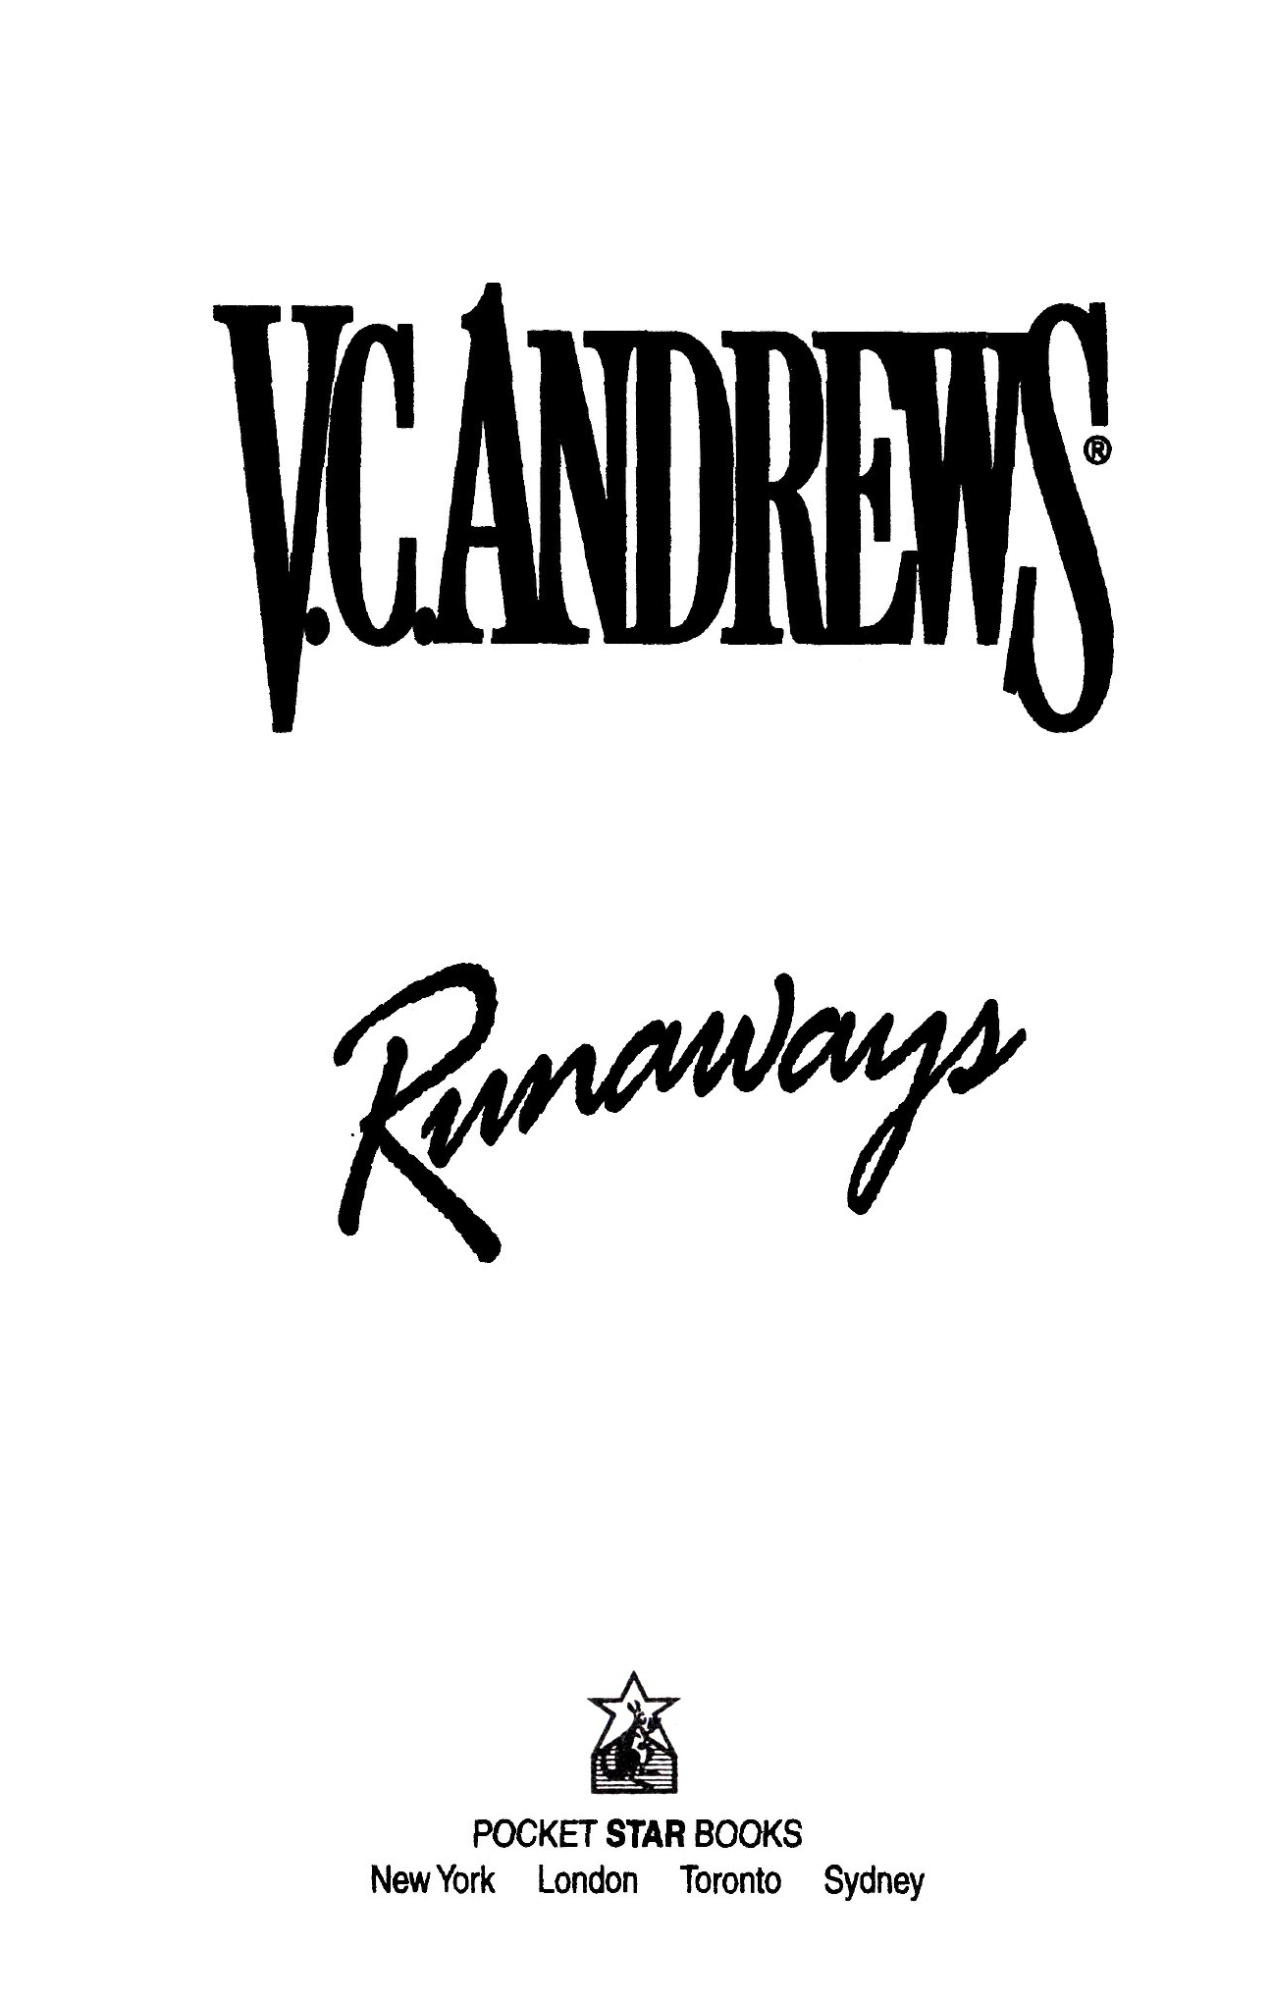 READ ONLINE FREE books by V.C. Andrews.